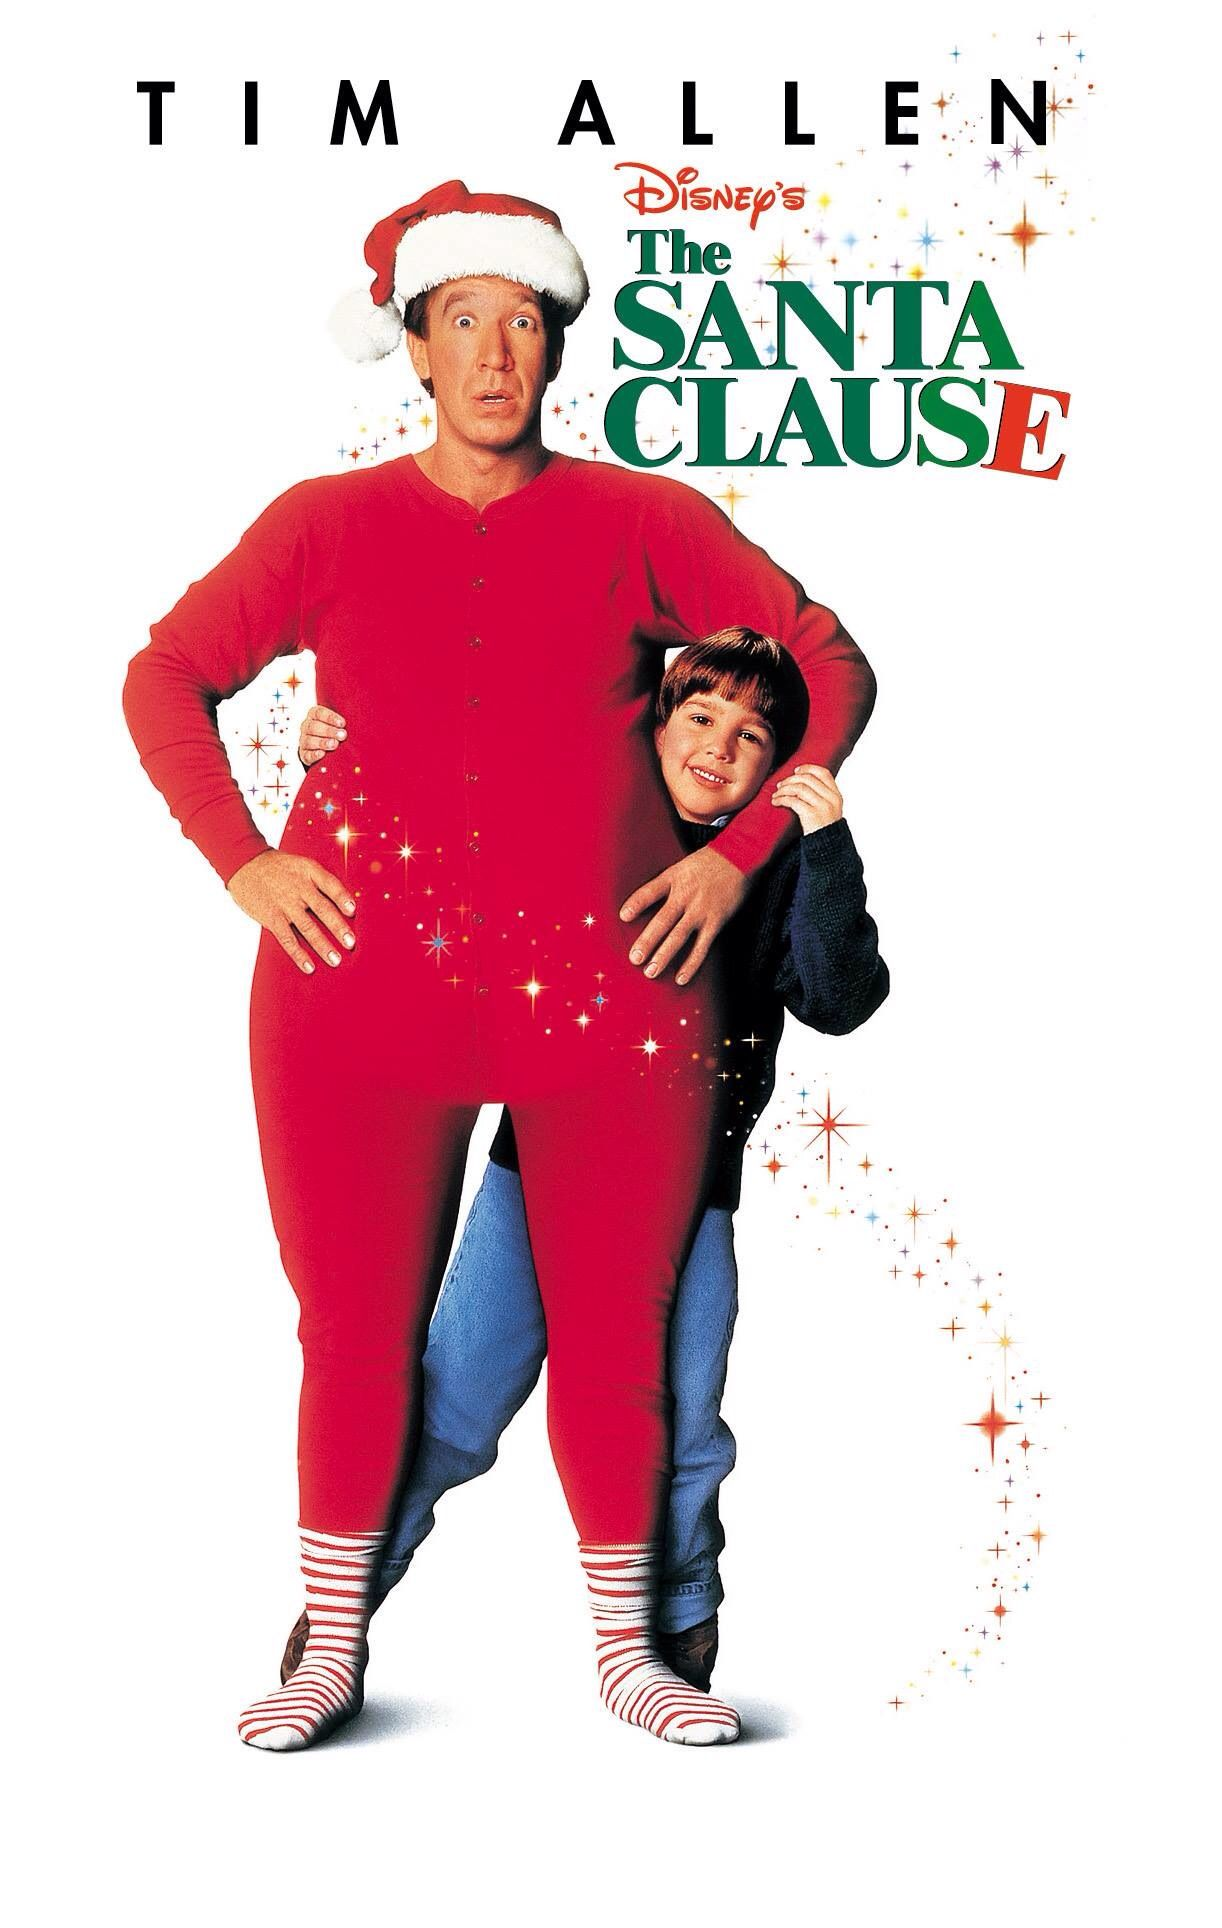 classic Tim Allen at his Christmas best! (With images